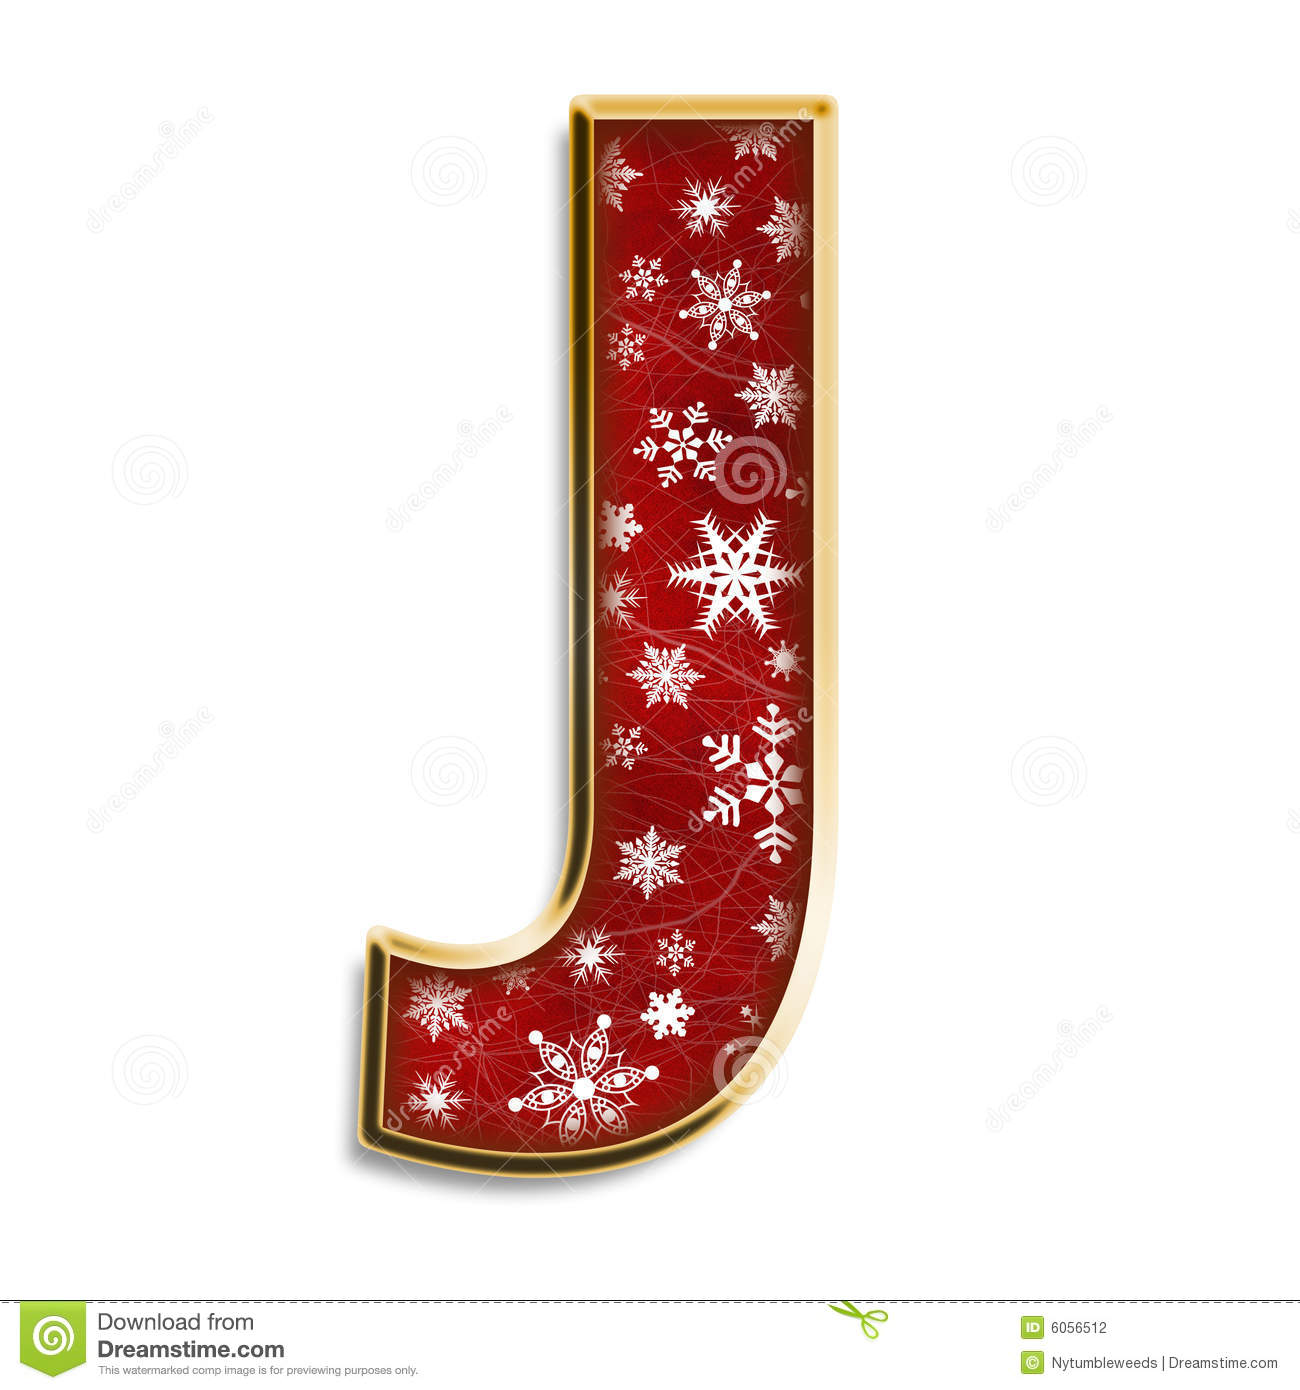 3d capital J in red with white snowflakes & gold border isolated on ...